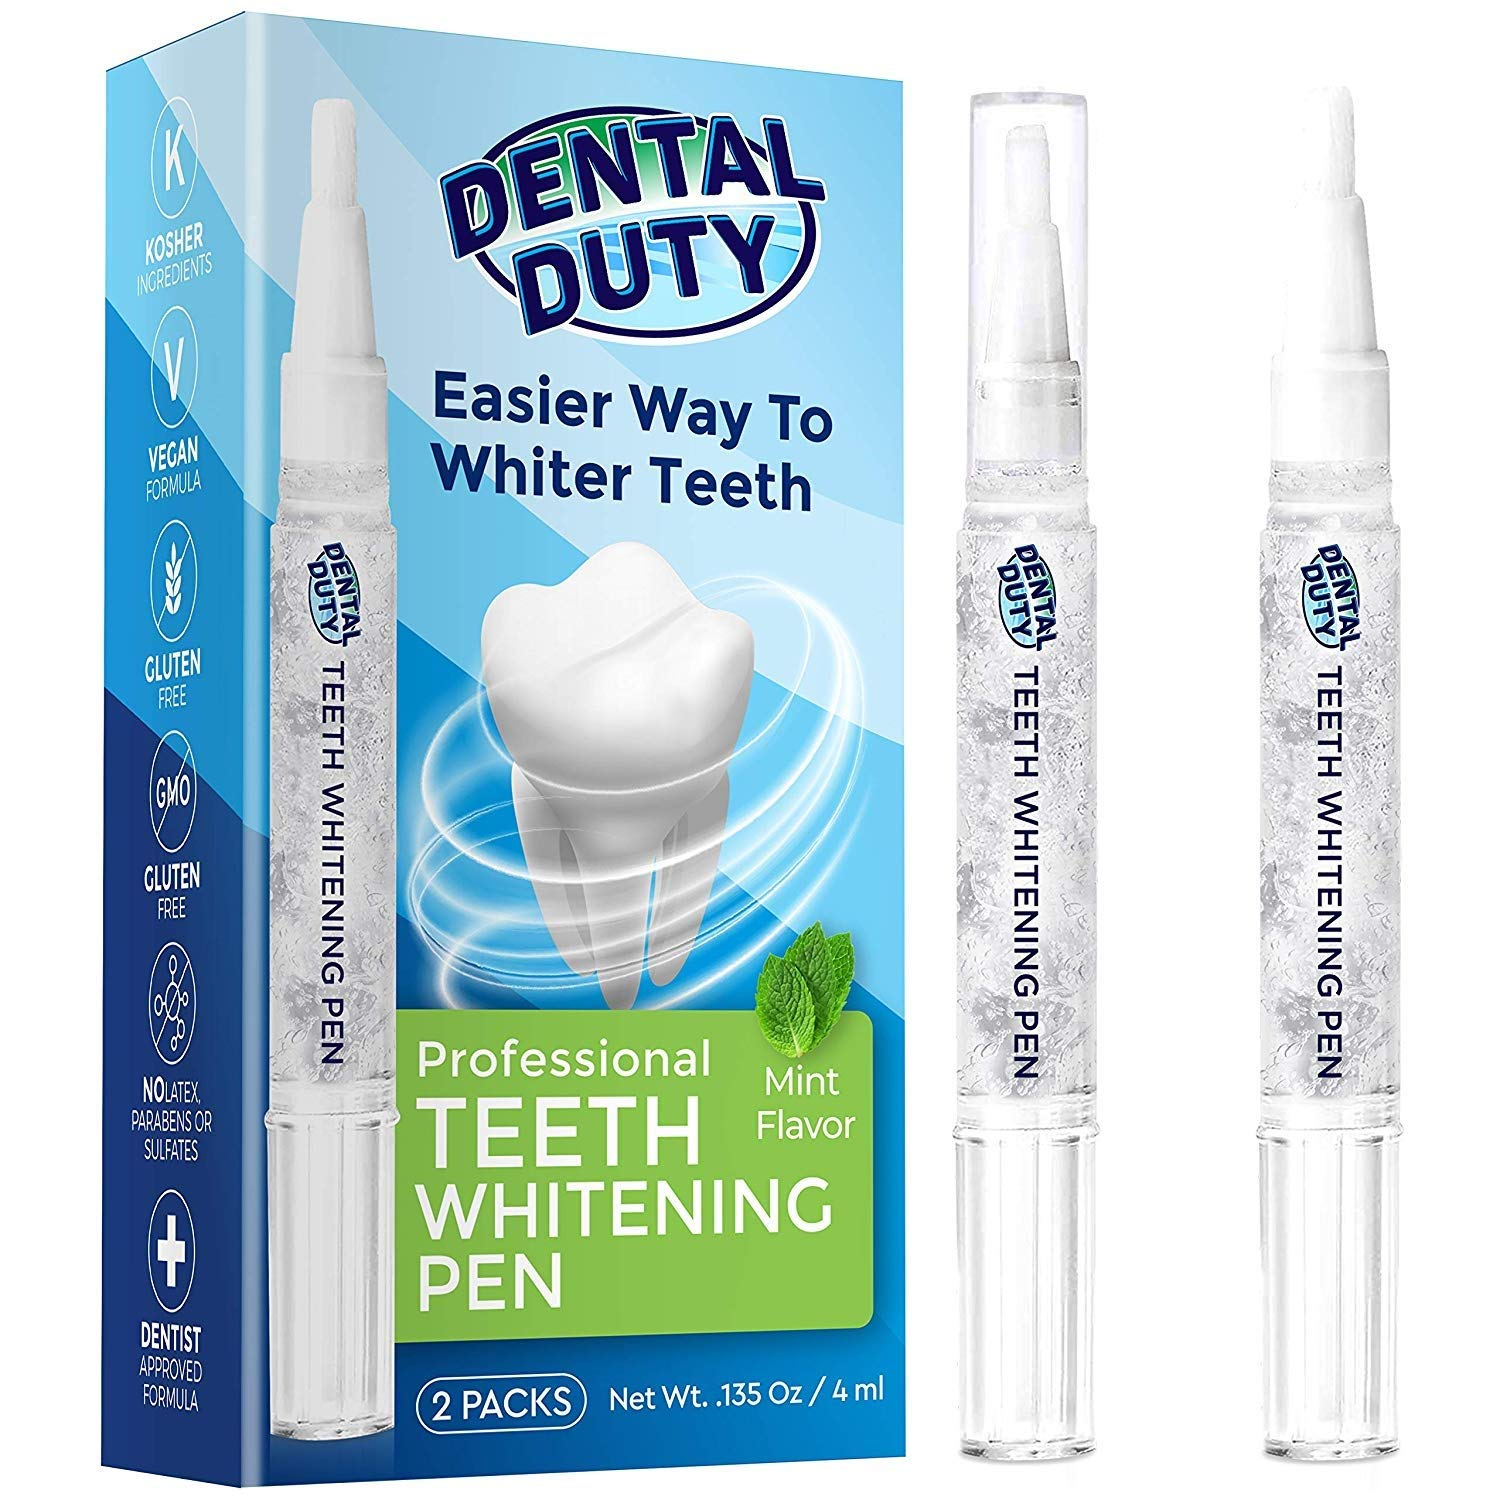 Dental Duty Teeth Whitening Kit With 2 Teeth Whitener Pens - For A Bright Snow White & Beautiful Smile- Stain Remover Pen For Sensitive Teeth- 35% Carbamide Peroxide Gel -30+ Uses- Natural Mint Flavor